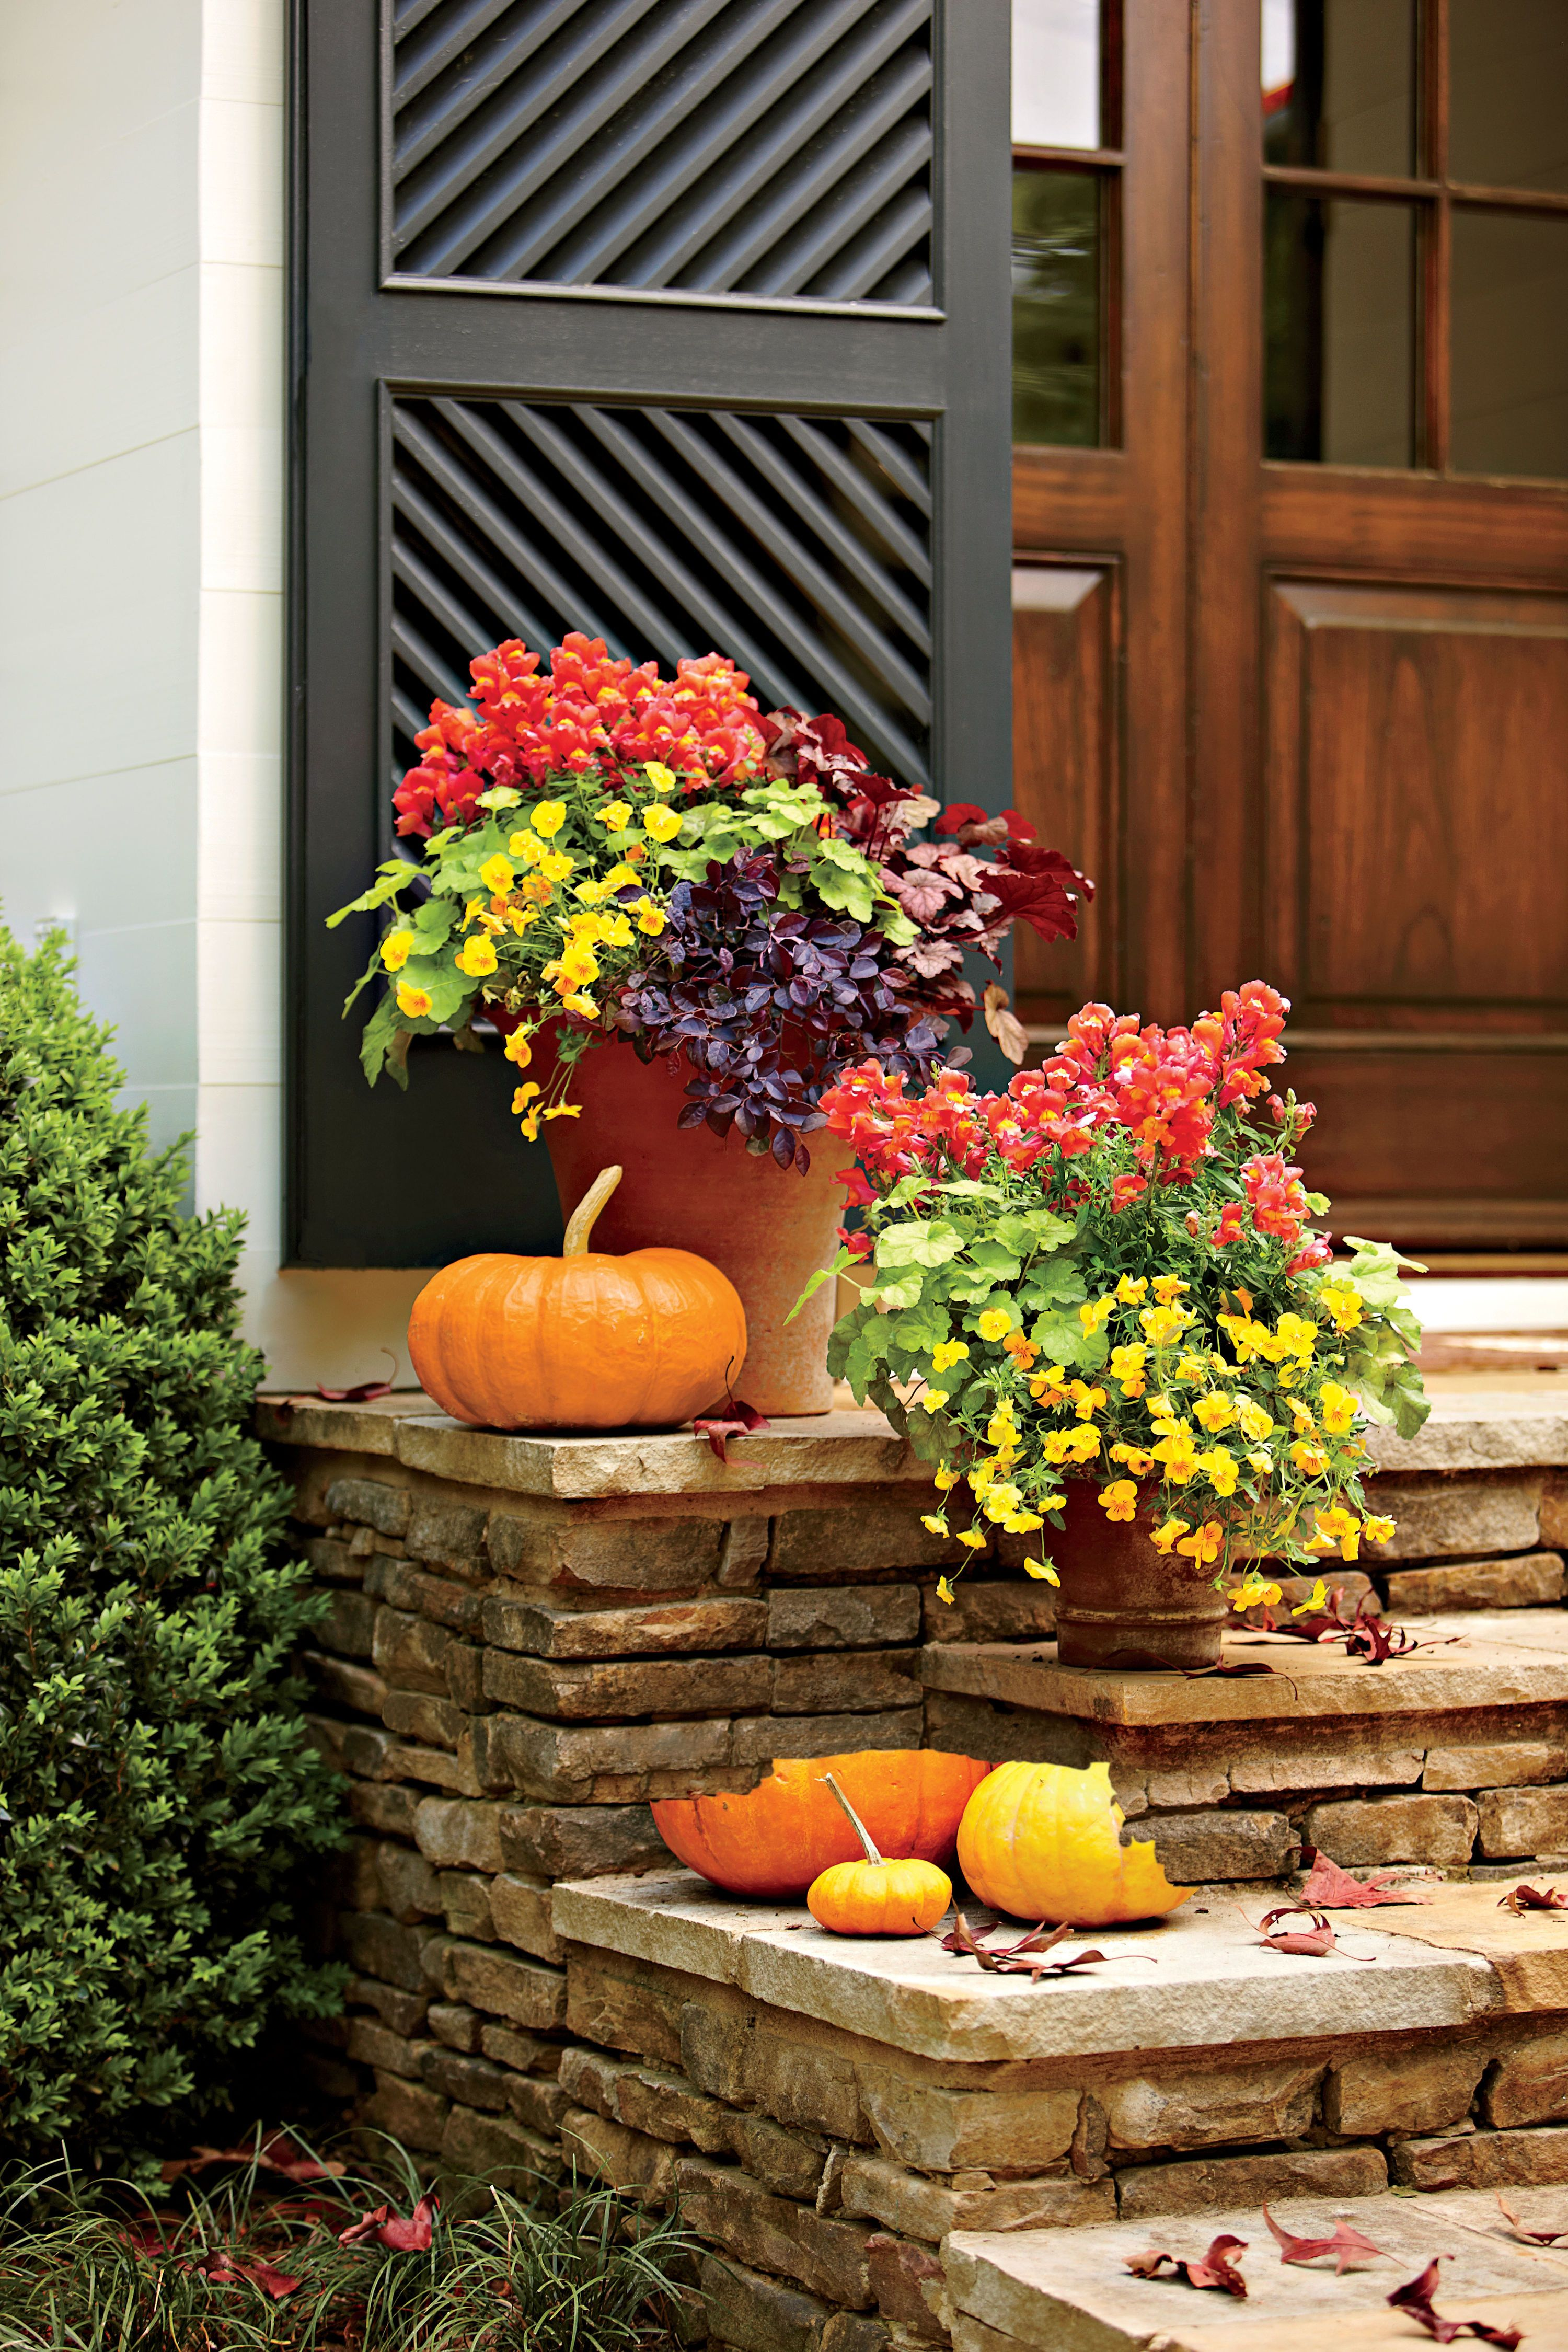 Best Ideas for Fall Container Gardening | Fall planters ...